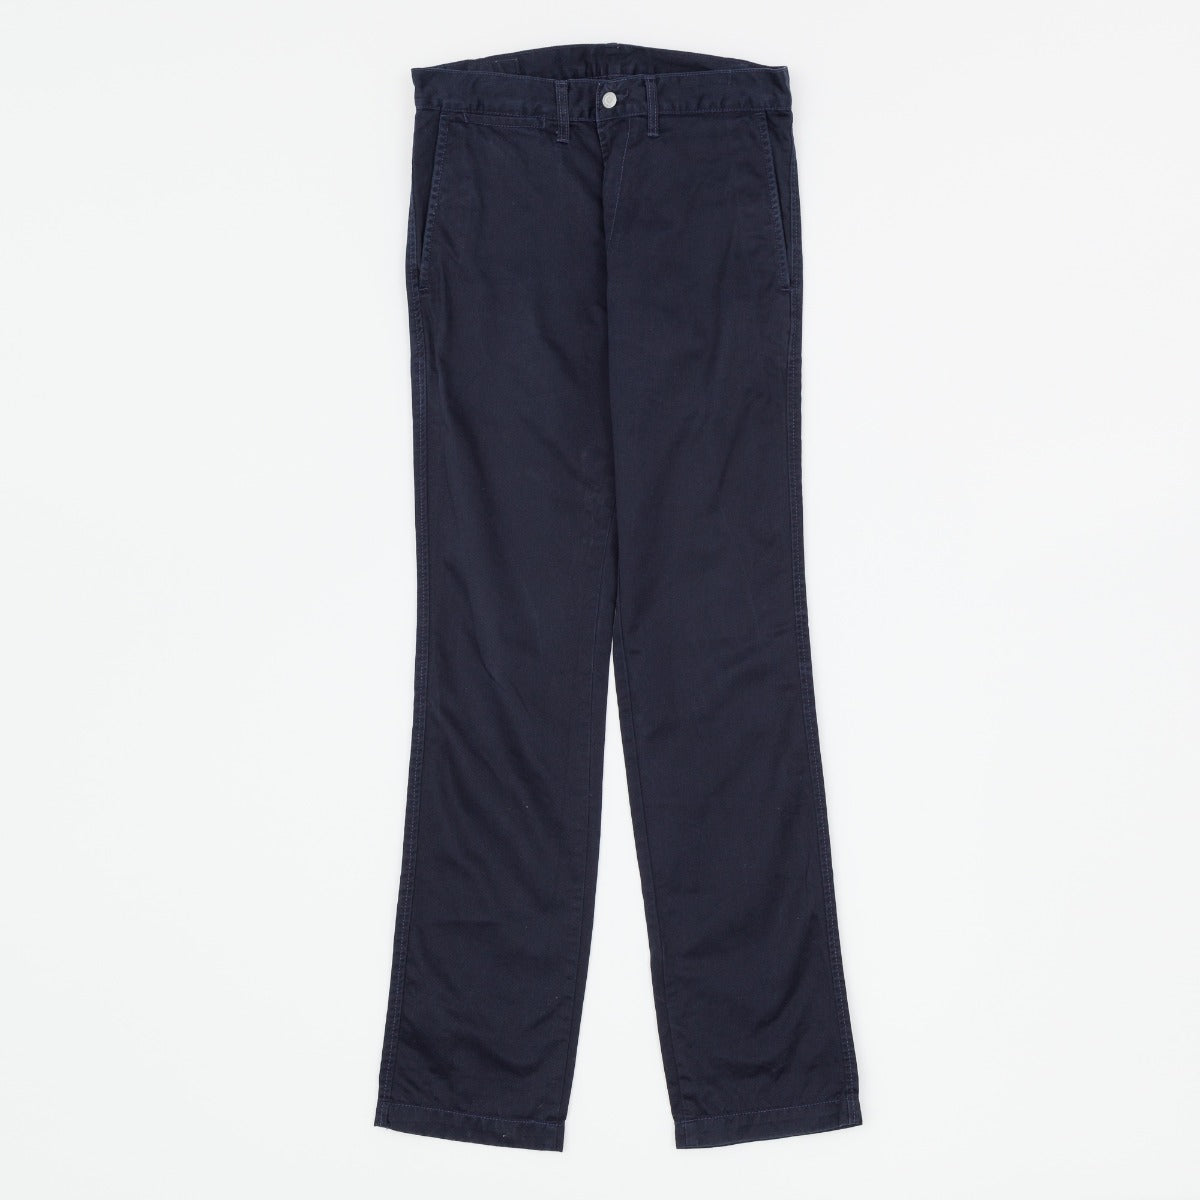 Margaret Howell Navy Chinos